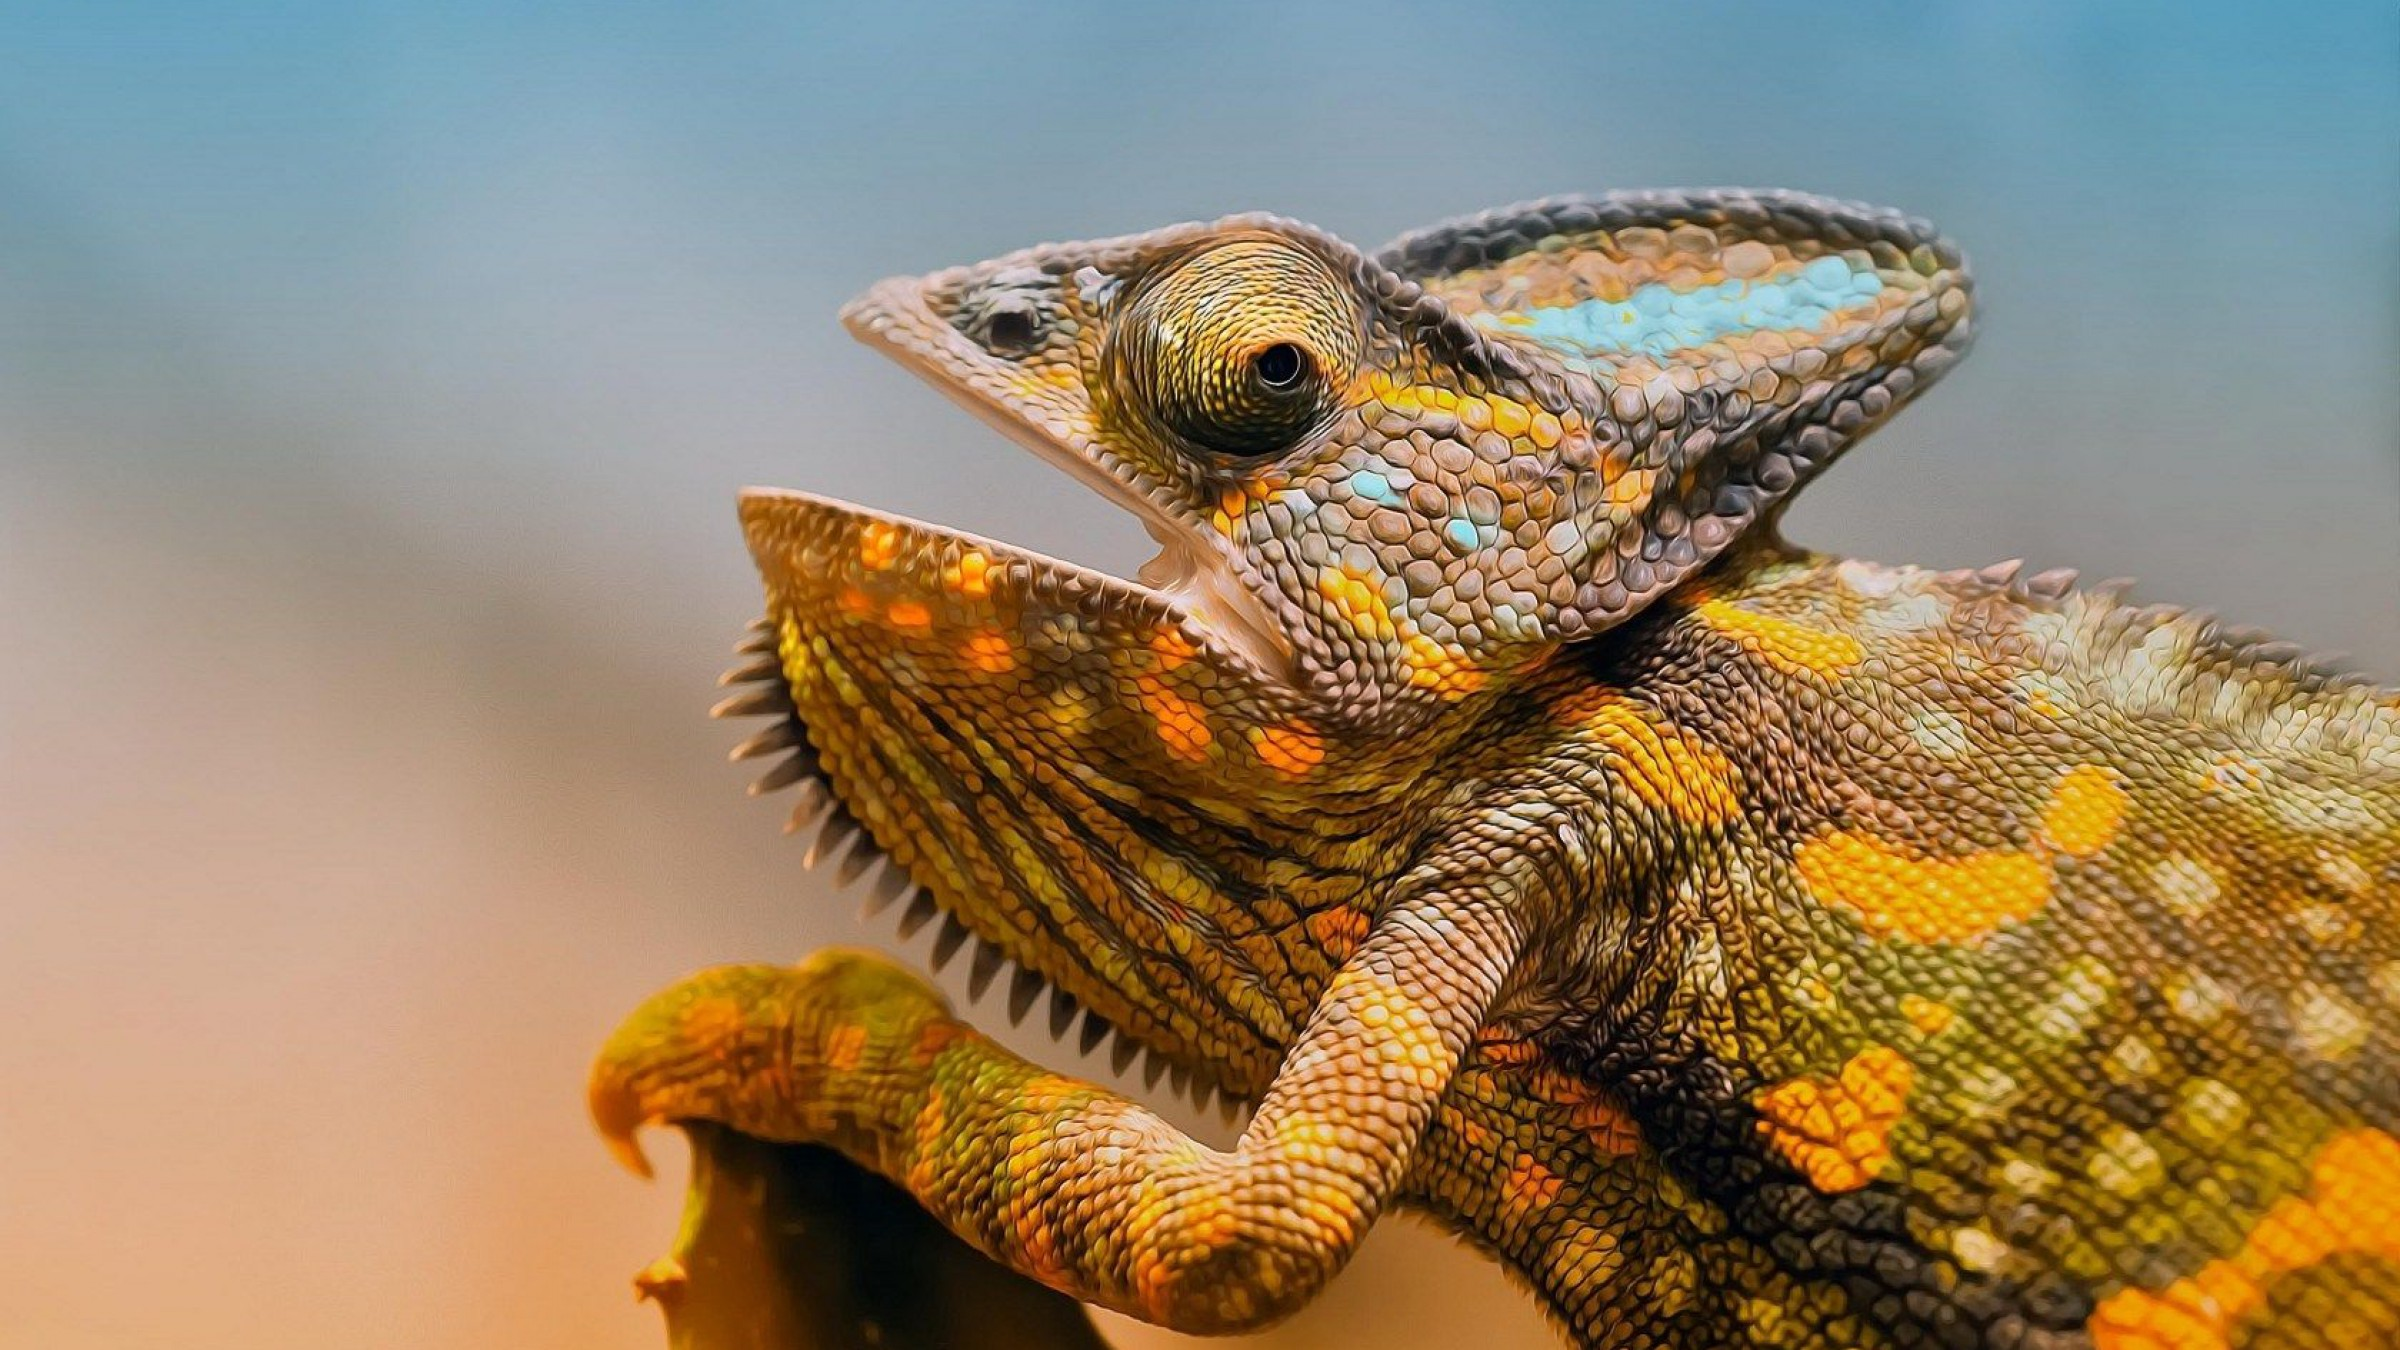 4K Lizards Wallpapers High Quality | Download Free